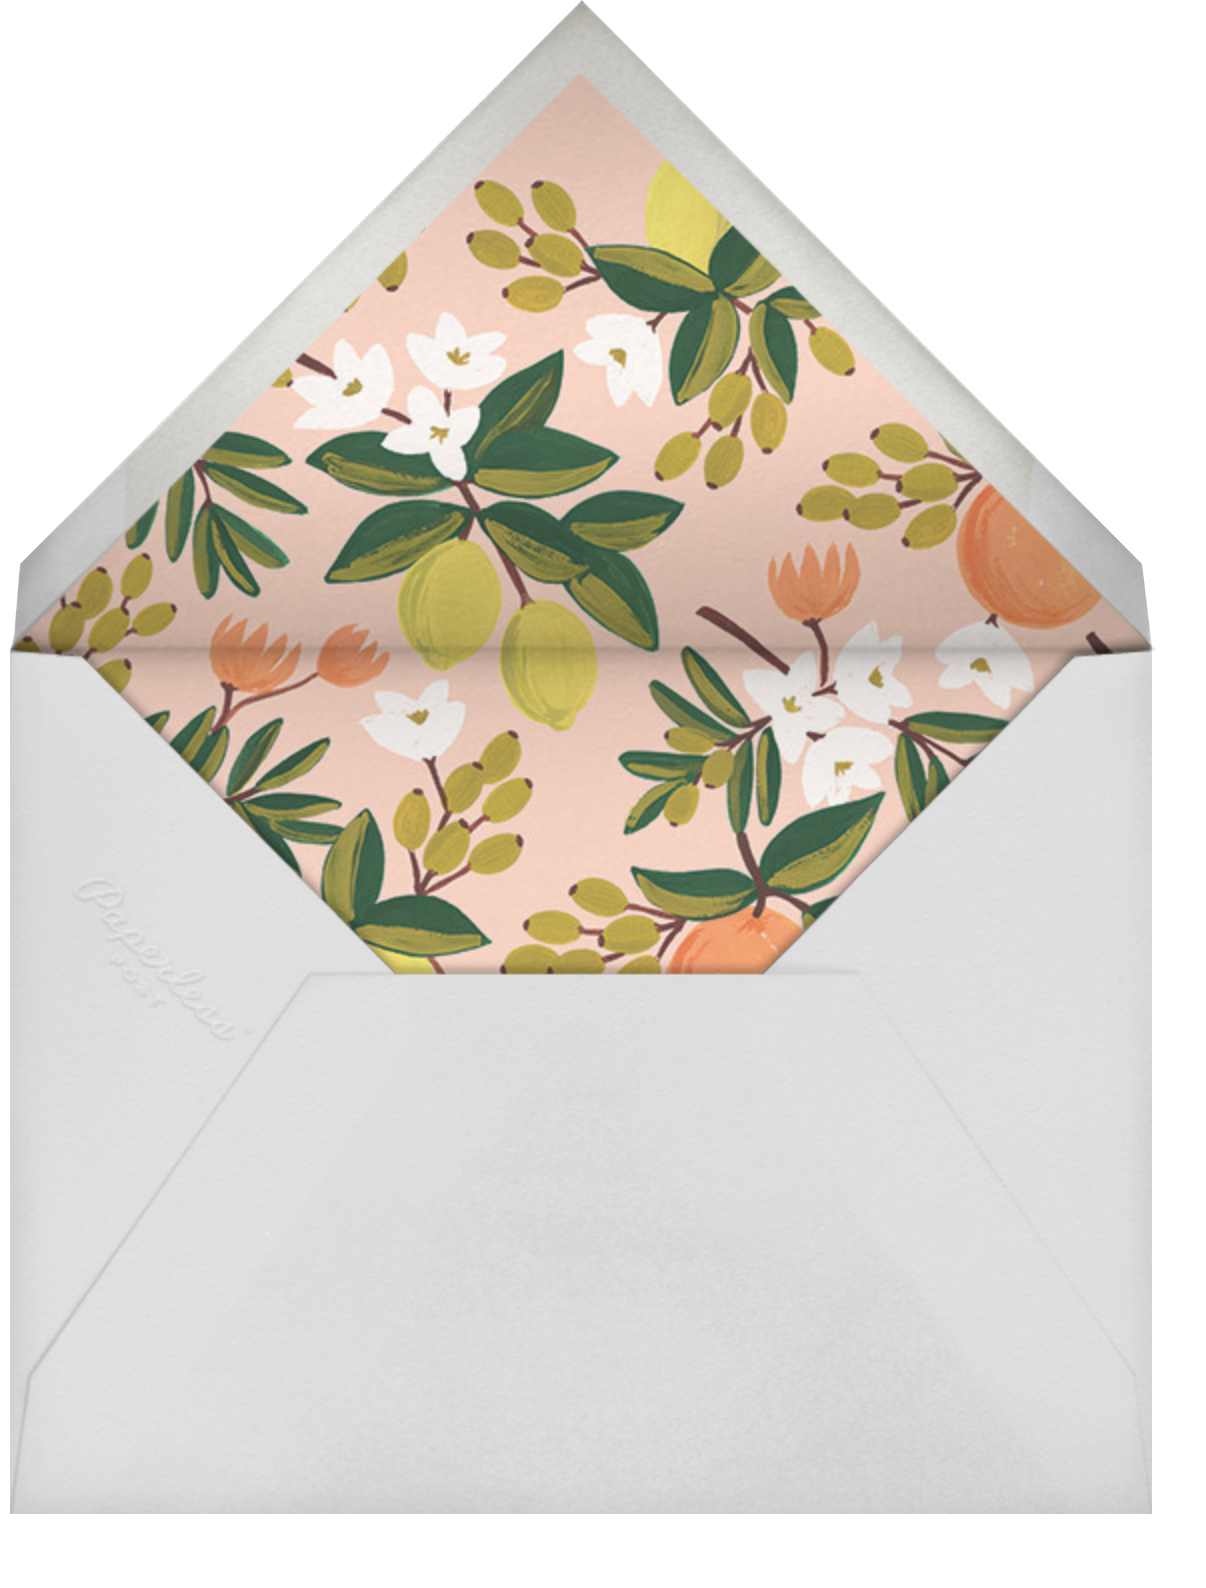 Citrus Orchard Suite (Save the Date) - White - Rifle Paper Co. - Save the date - envelope back